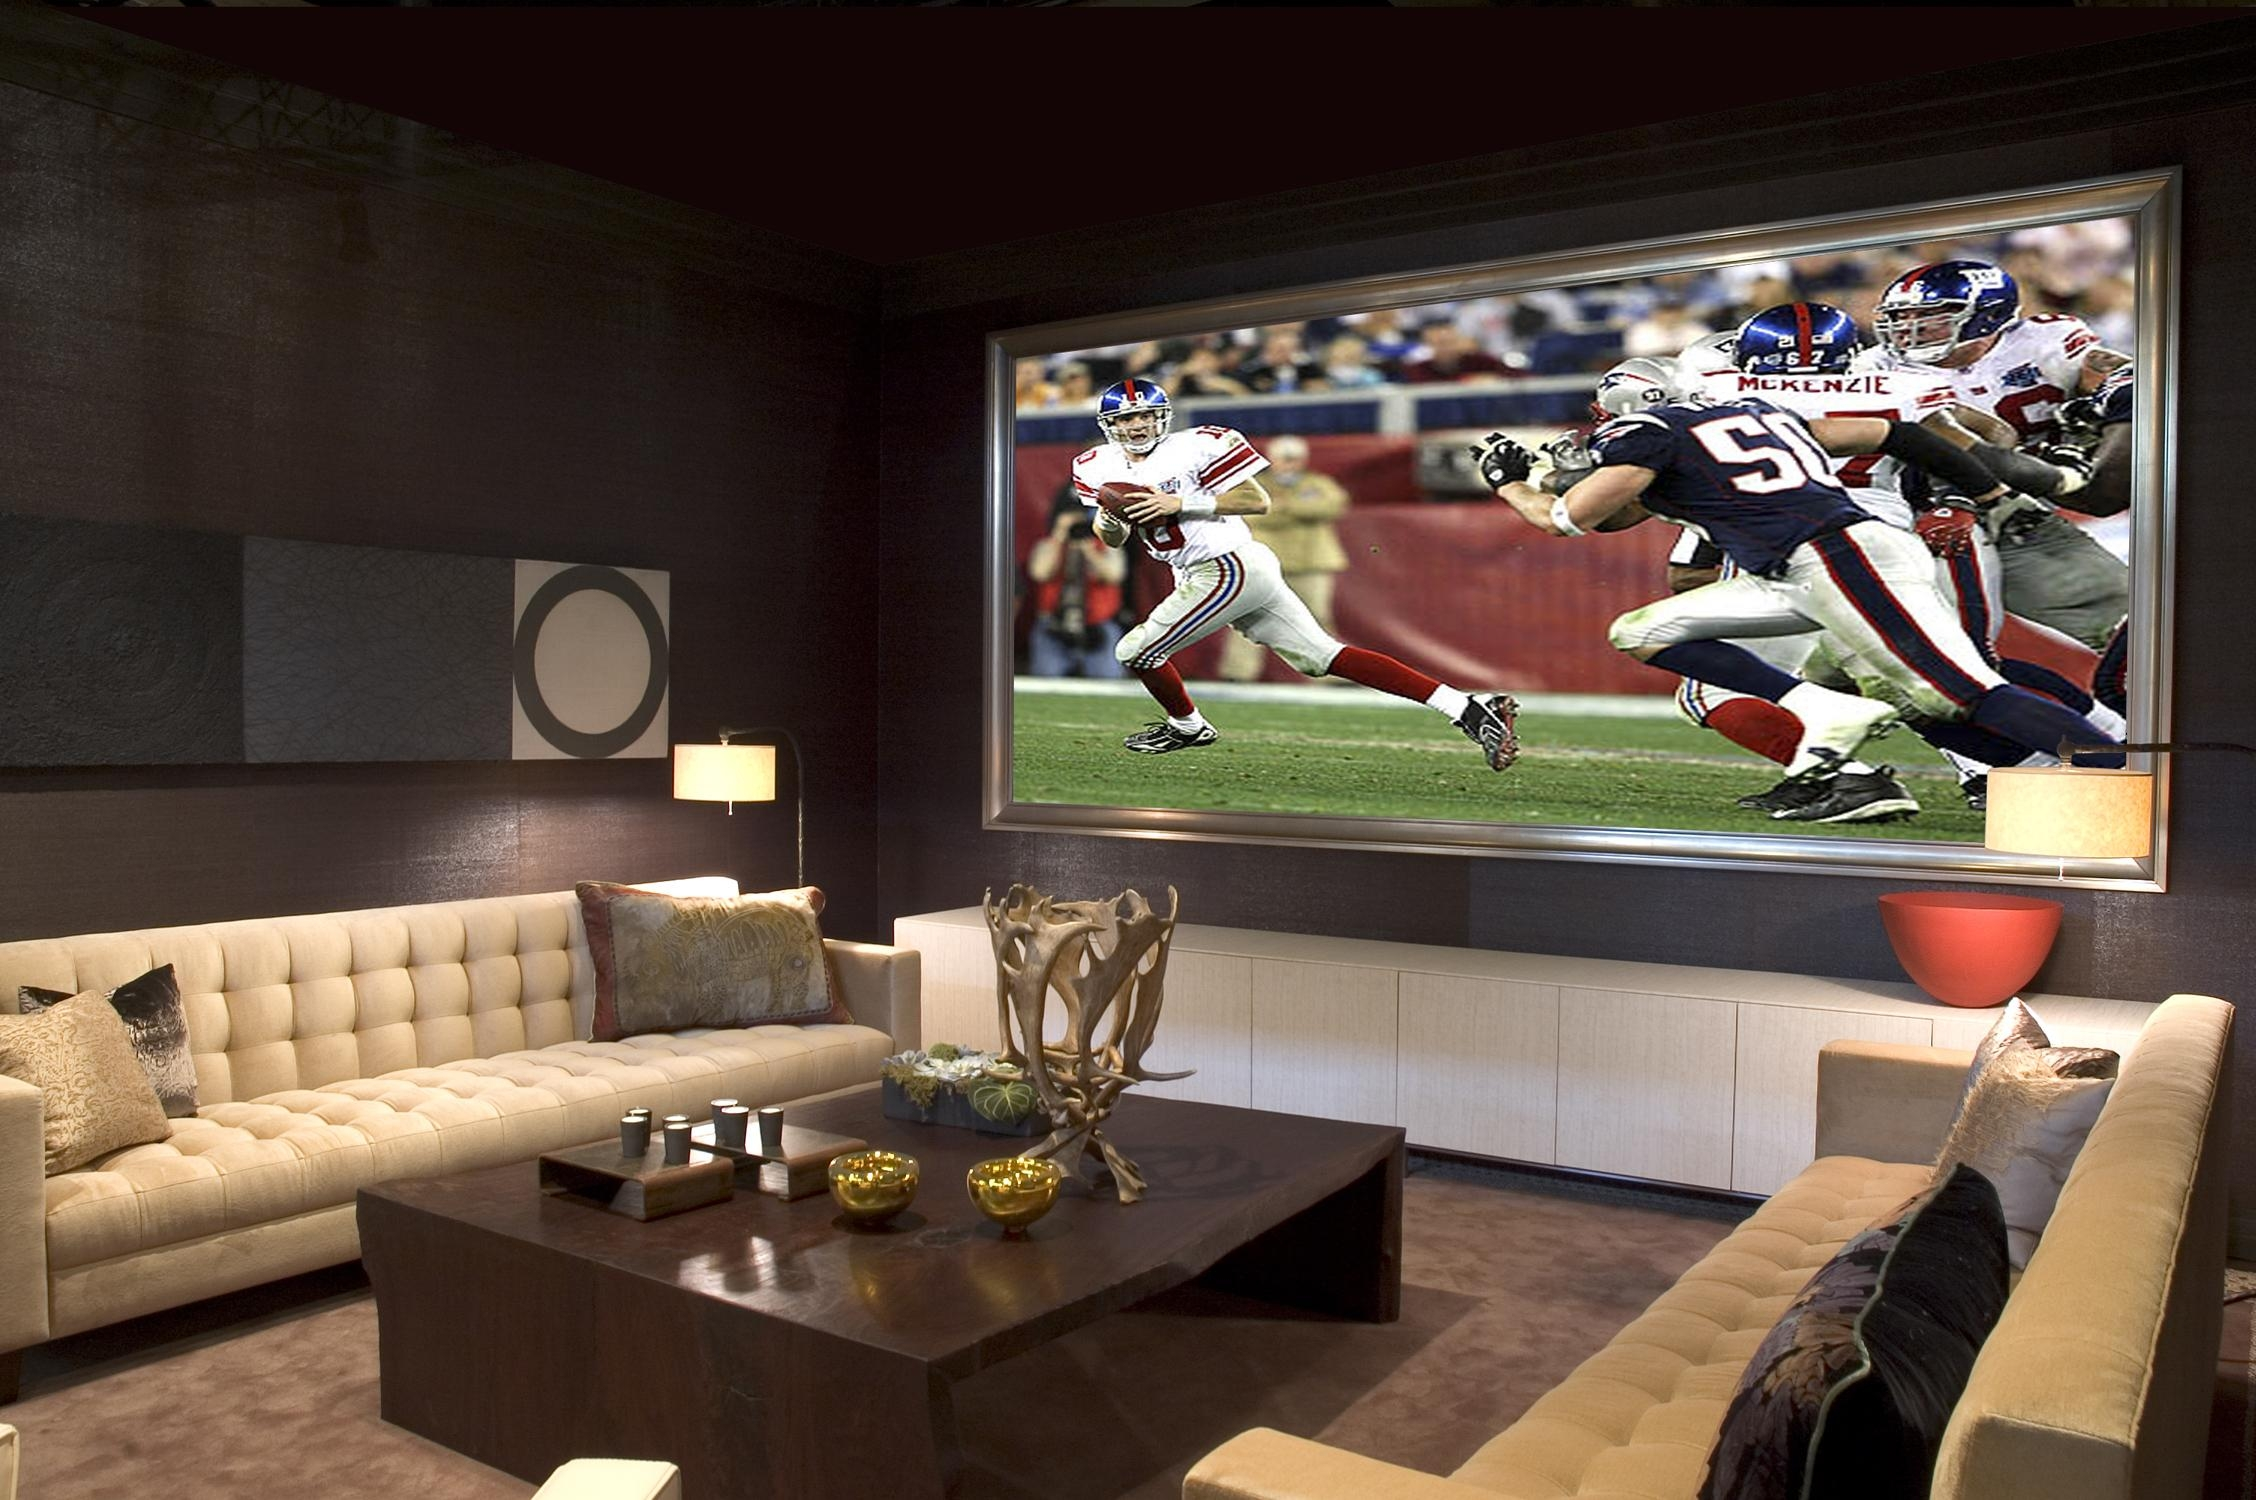 Media Room Sofas And Media Room And Home Theater Sectional Sofa Throughout Media Room Sectional Sofas (View 6 of 20)